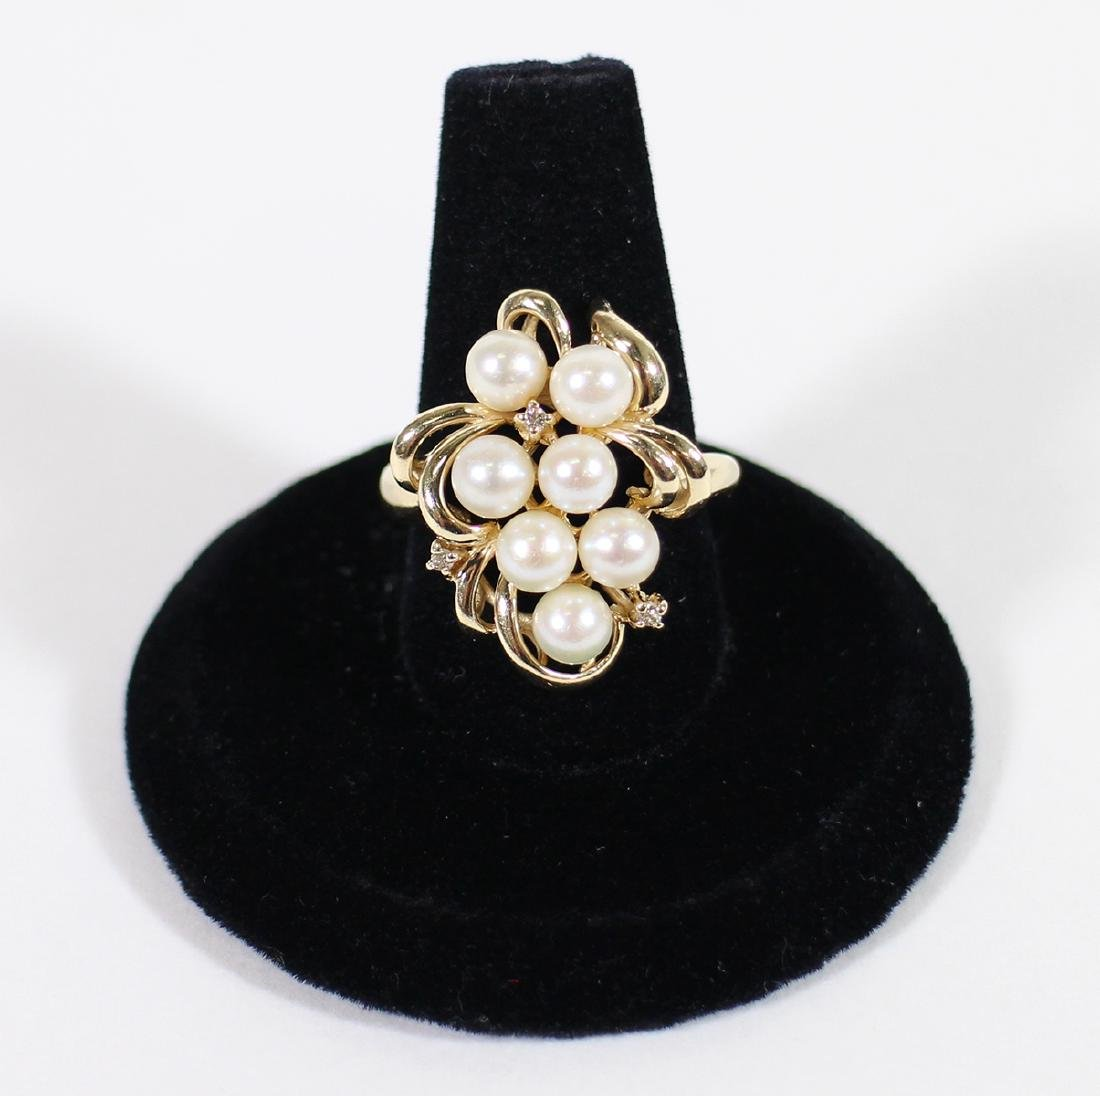 VINTAGE 14K YELLOW GOLD PEARL & DIAMOND RING